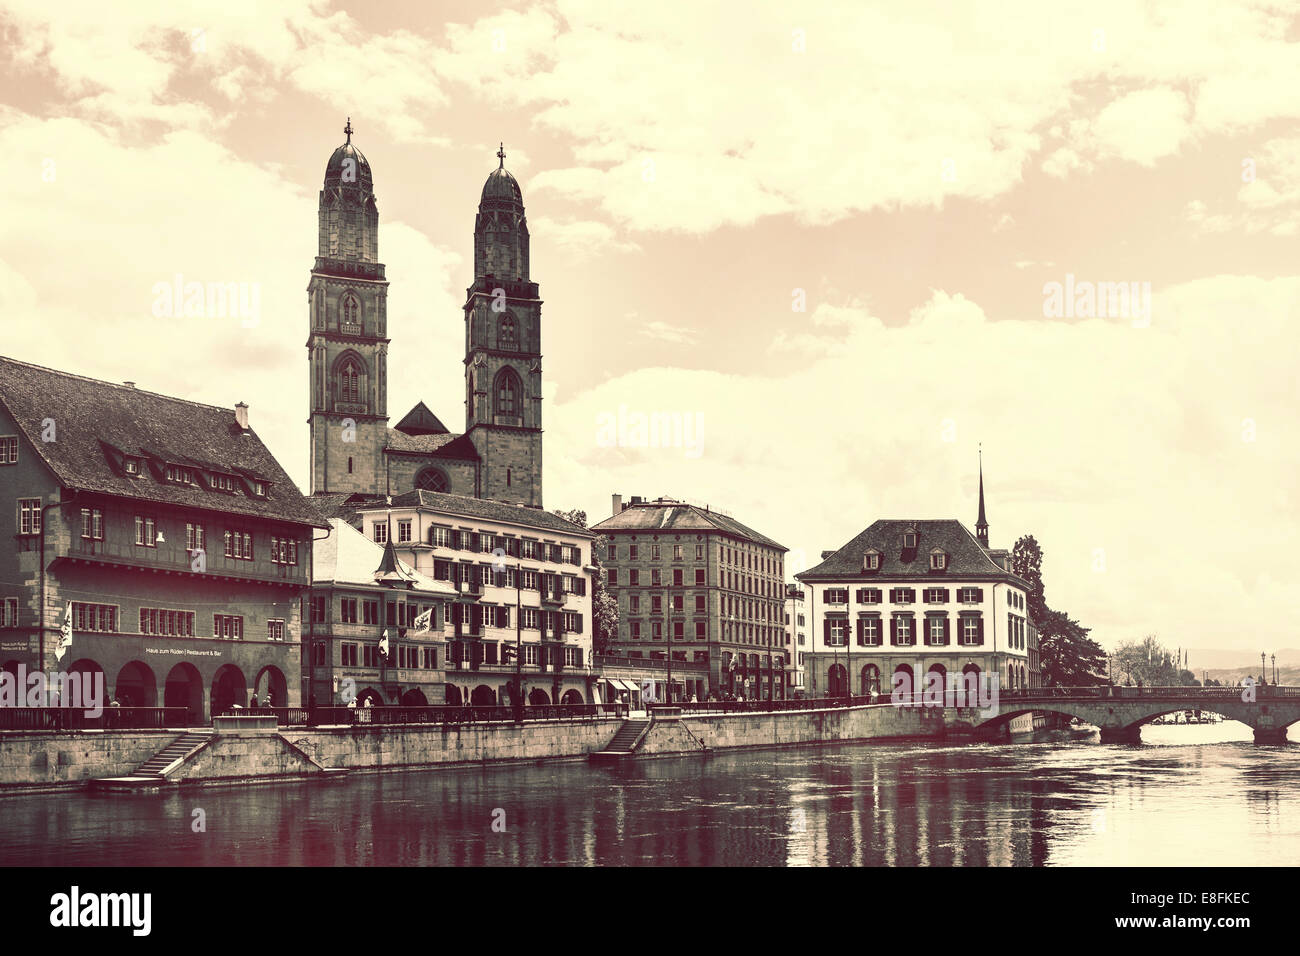 Switzerland, Zurich, View at Limmat river and towers - Stock Image